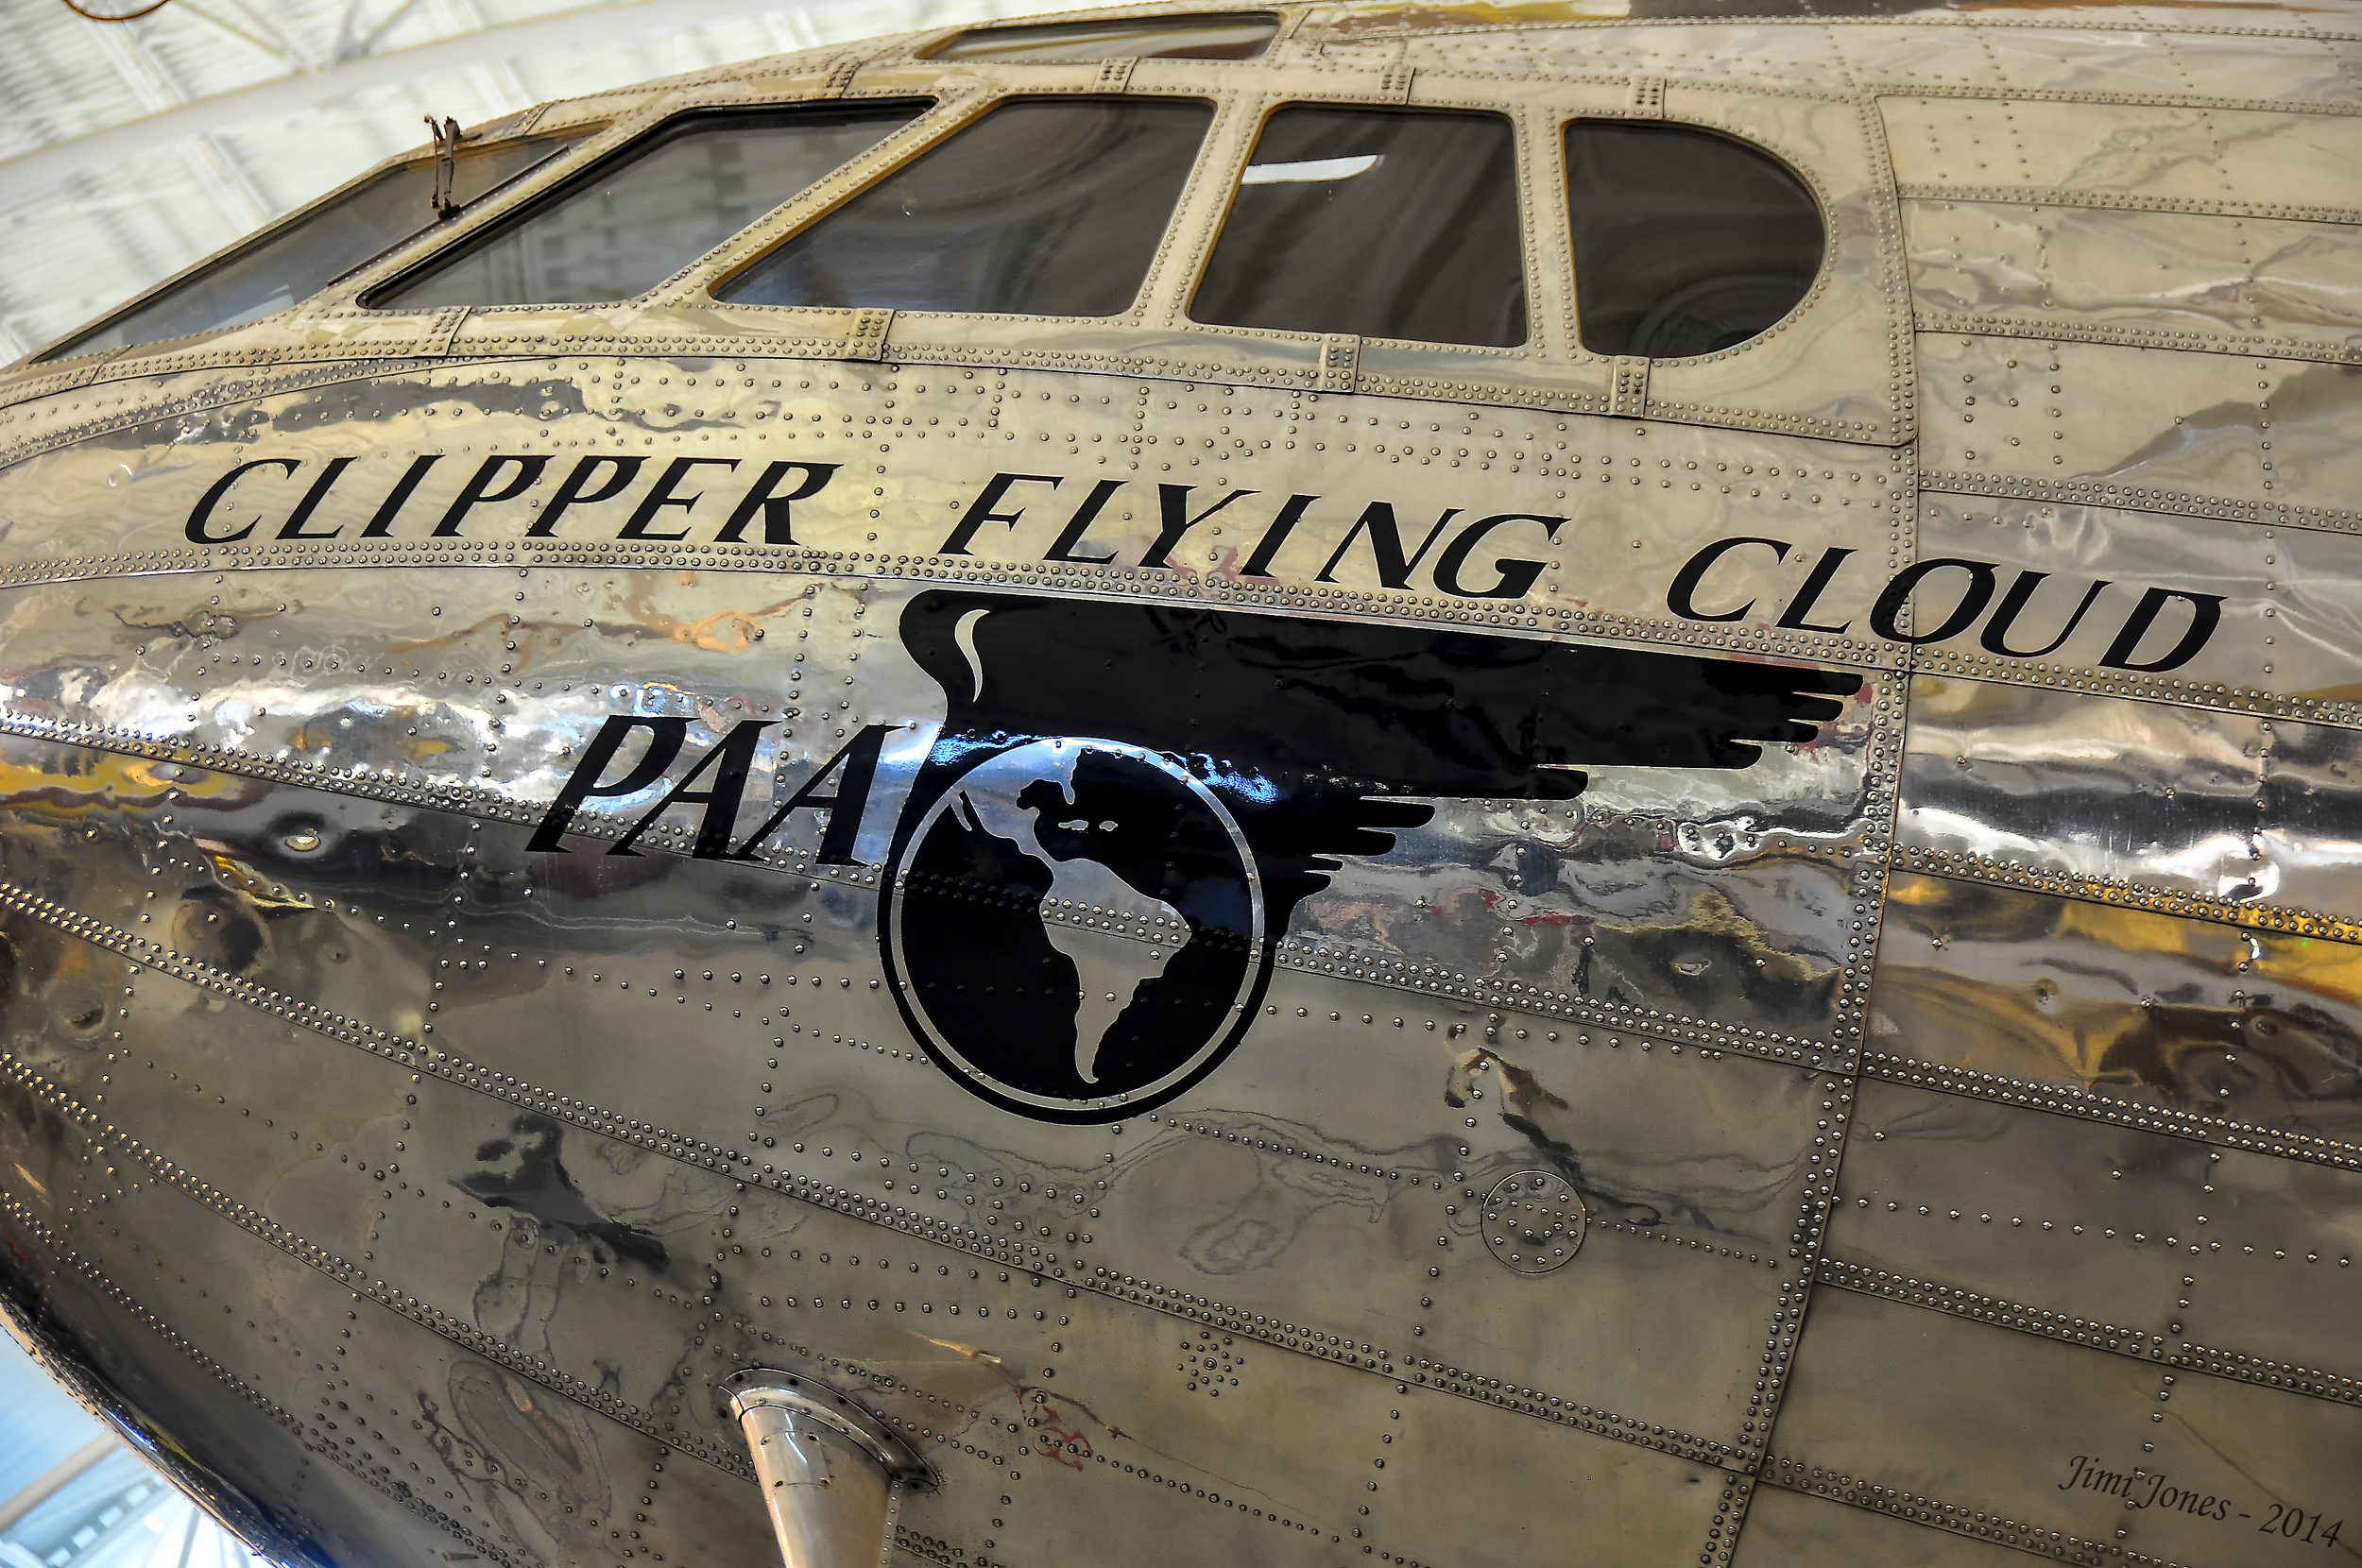 Clipper Flying Could